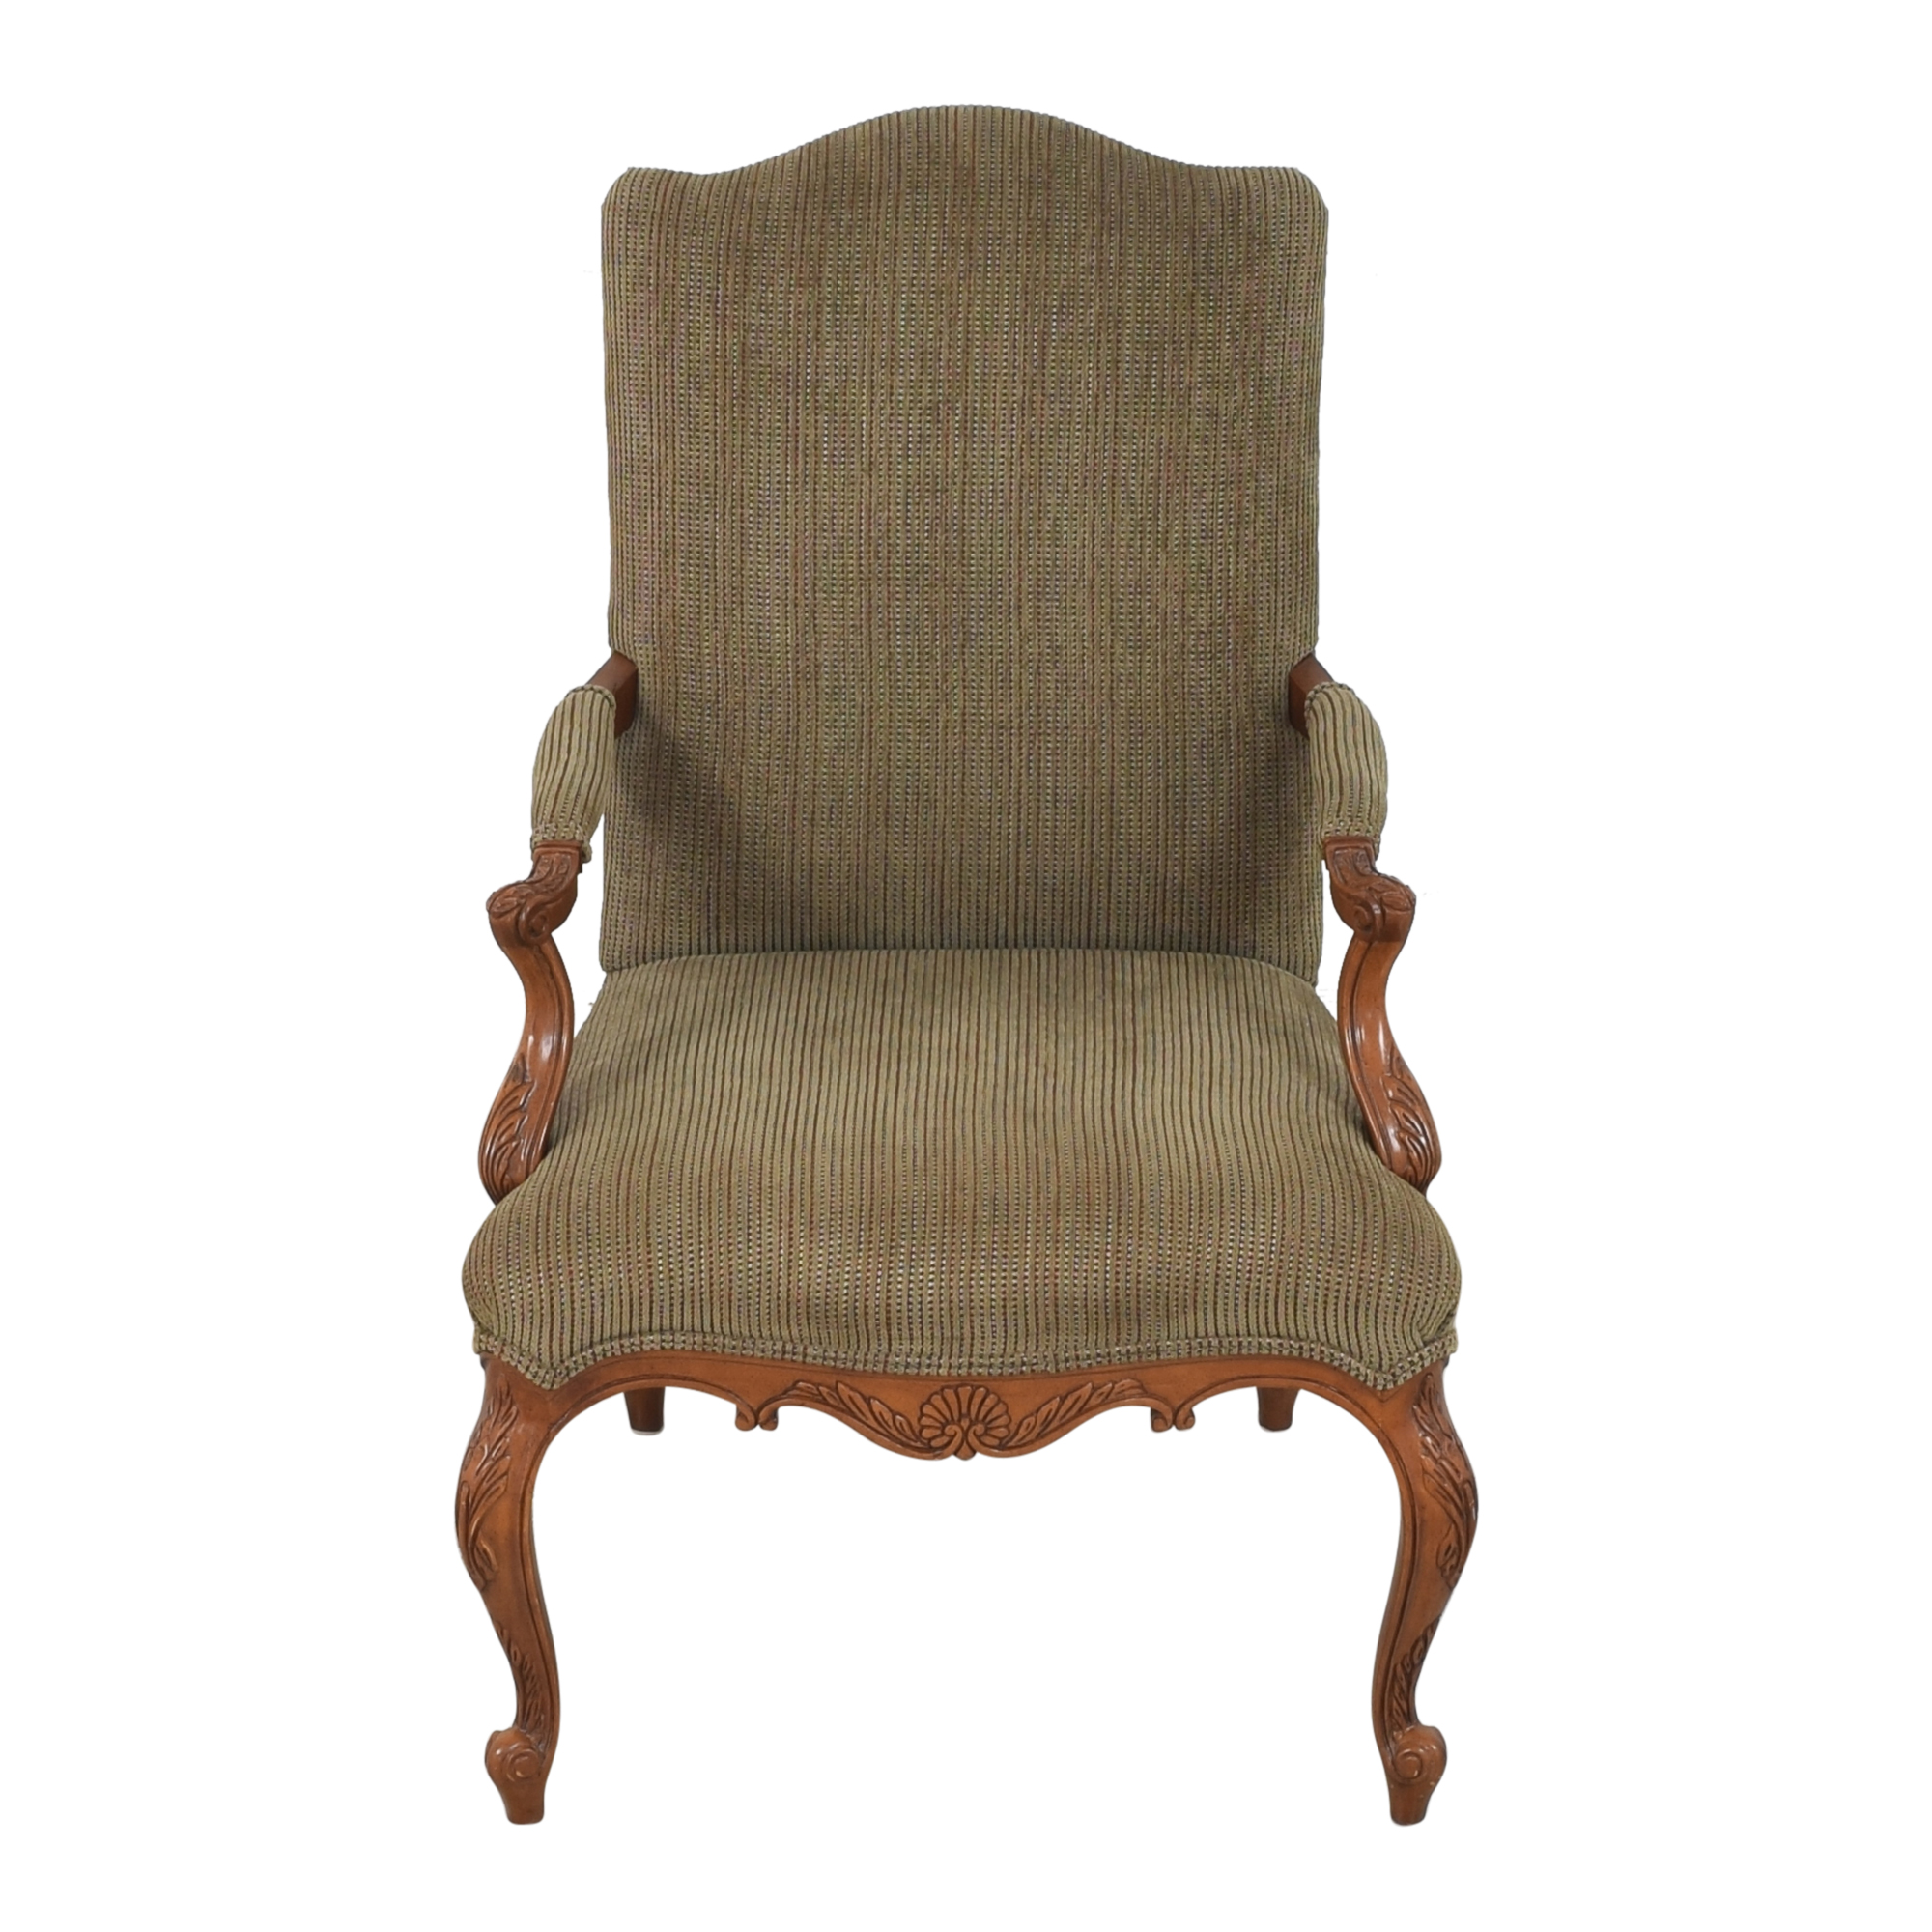 Drexel Heritage Drexel Heritage Accent Chair nyc